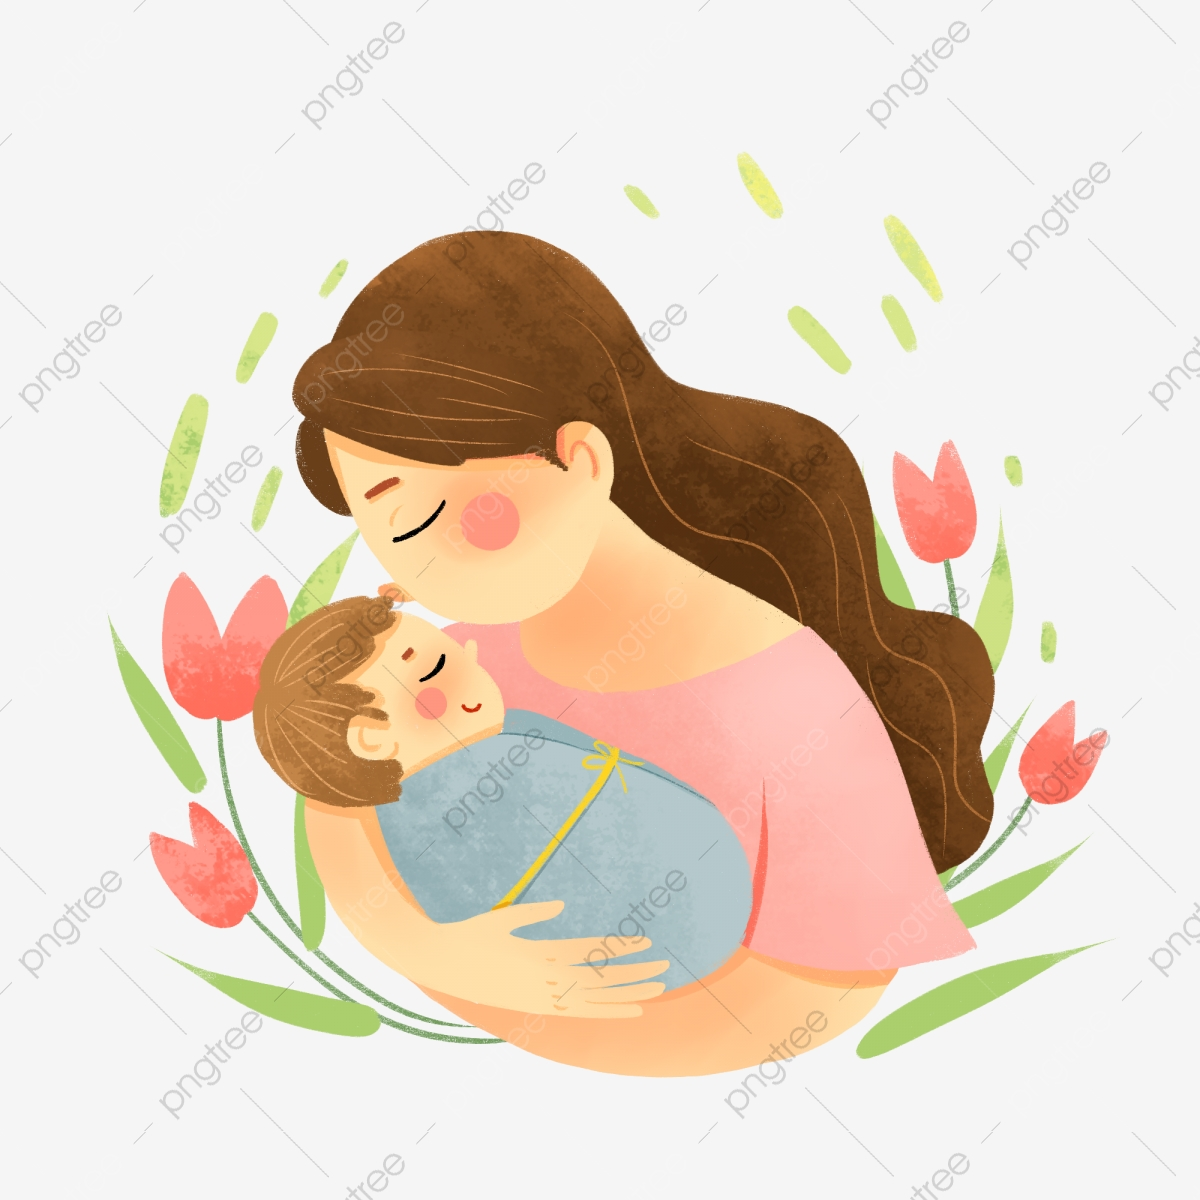 Mother Gently Kisses The Little Baby Mom Baby Child Png Transparent Clipart Image And Psd File For Free Download